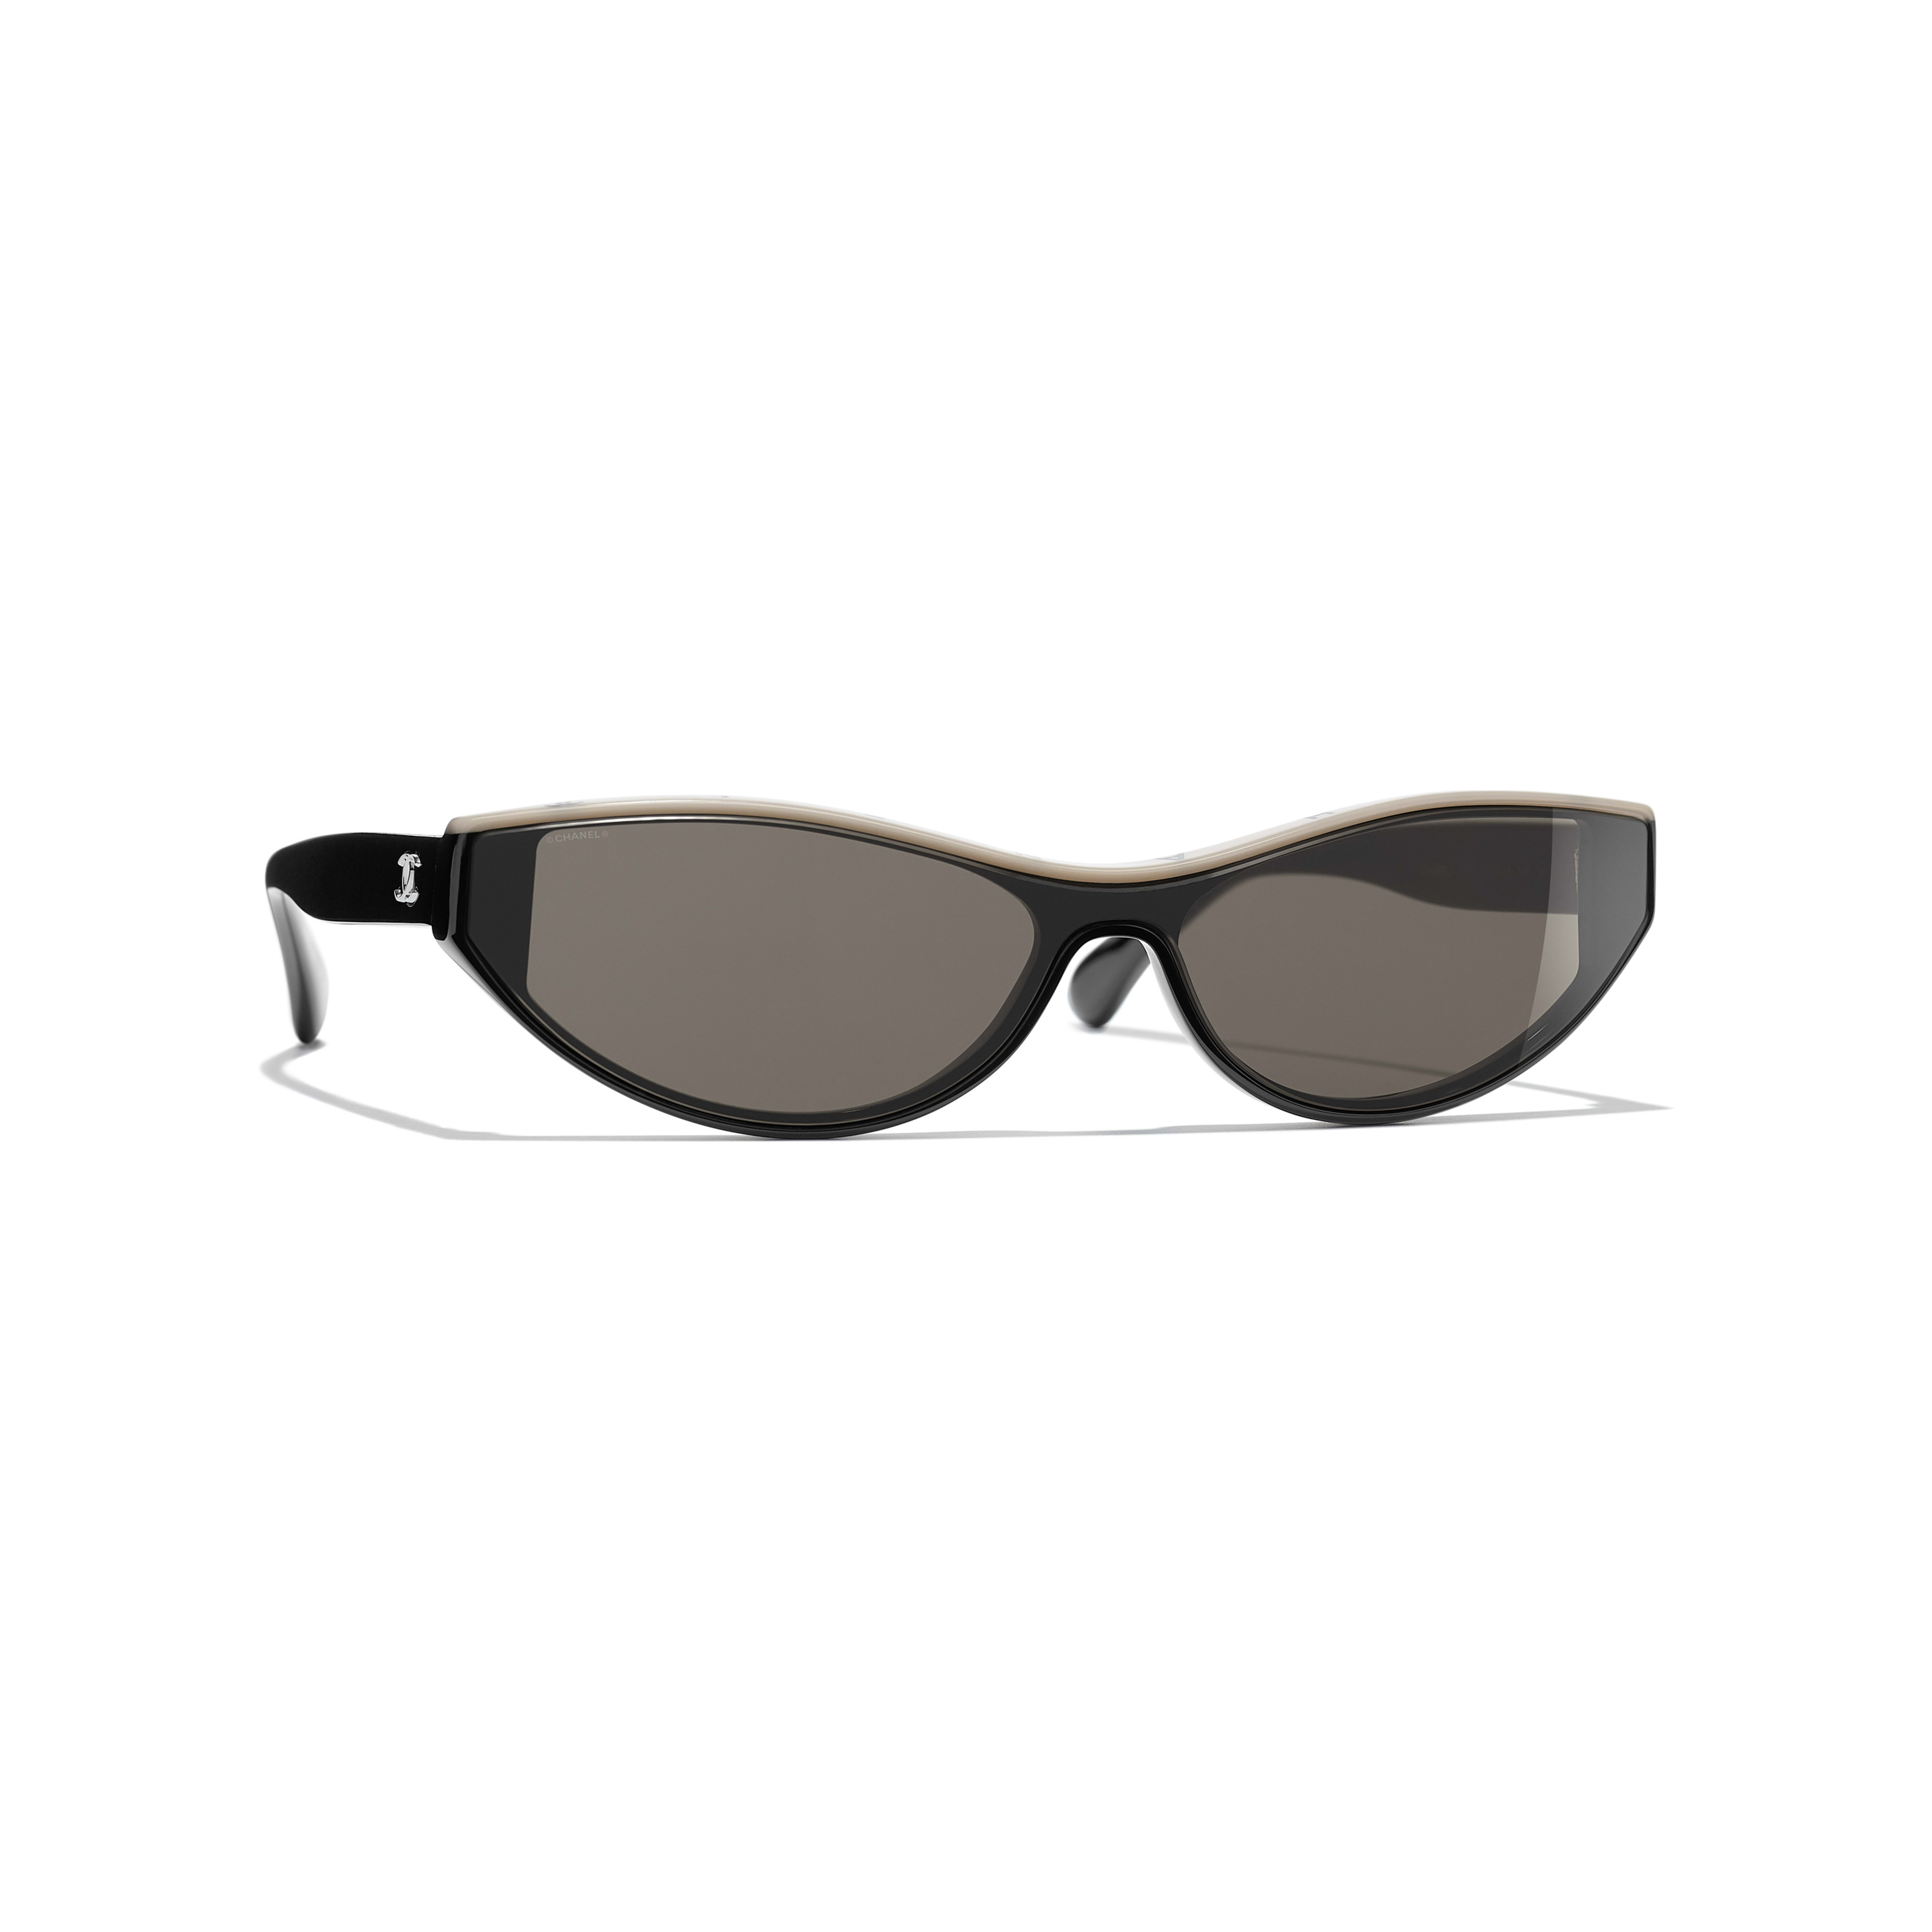 Cat Eye Sunglasses - Black & Beige - Acetate - CHANEL - Default view - see standard sized version